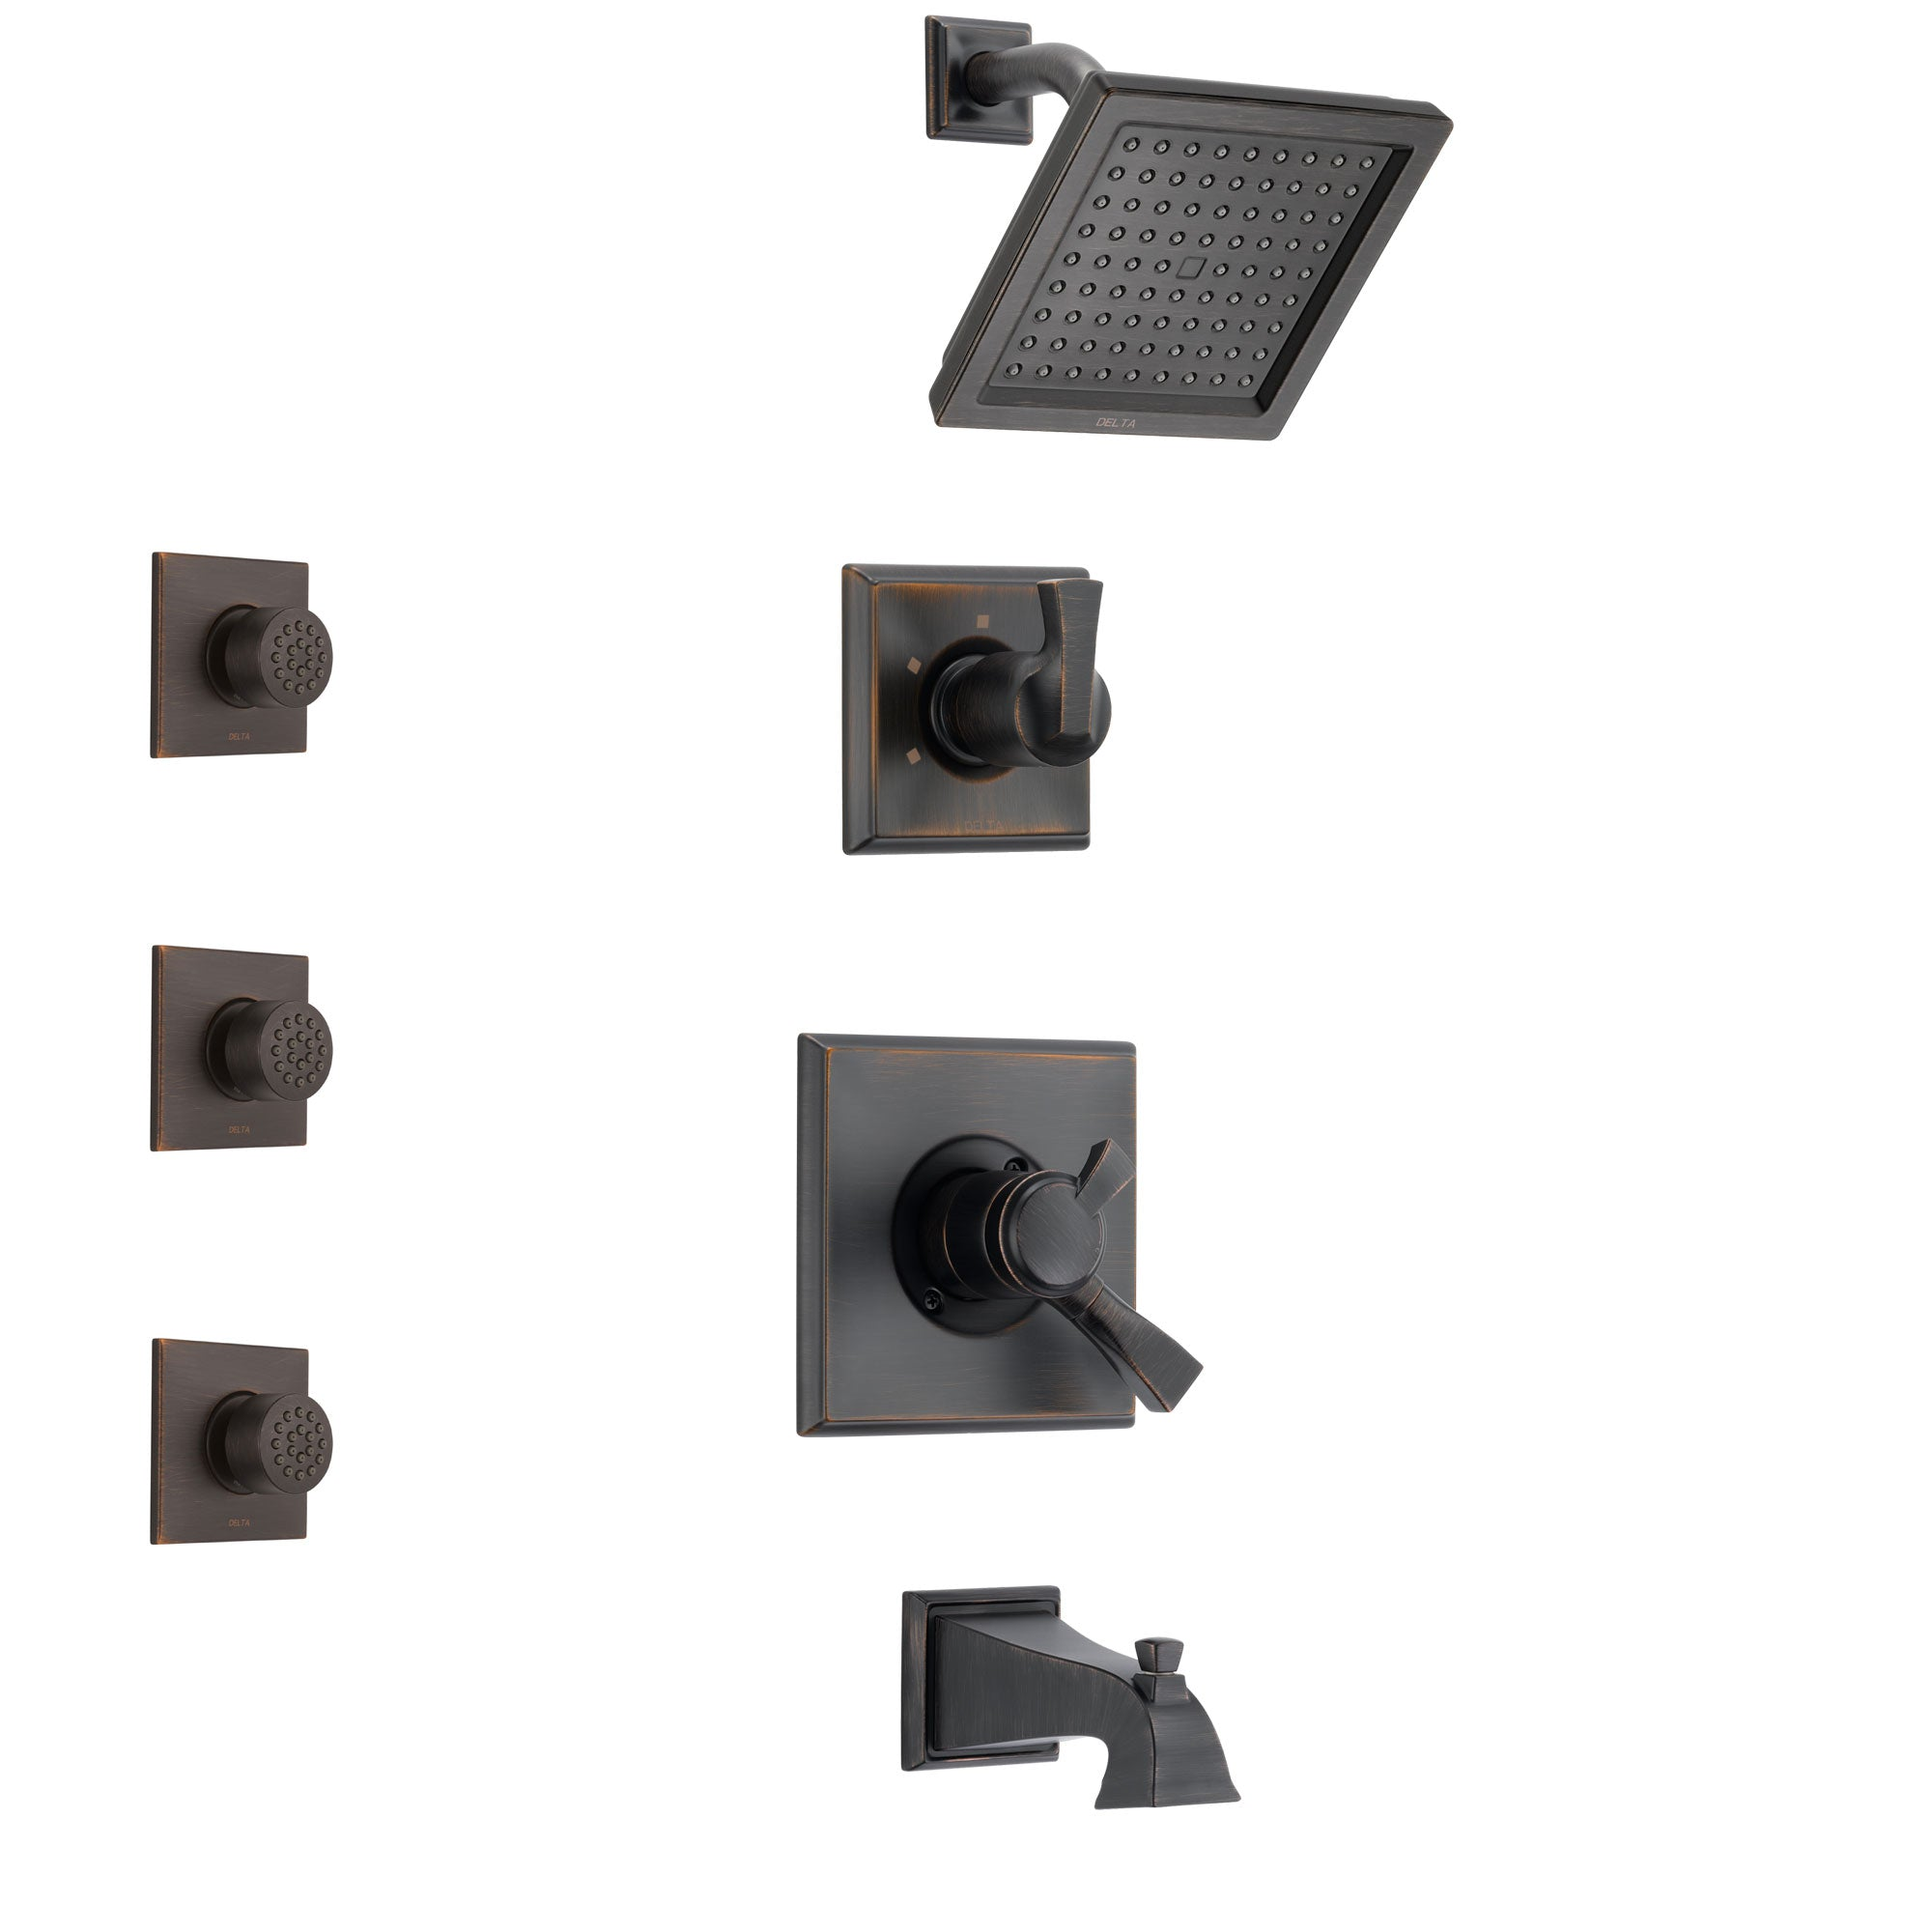 Delta Dryden Venetian Bronze Finish Tub and Shower System with Dual Control Handle, 3-Setting Diverter, Showerhead, and 3 Body Sprays SS174511RB2